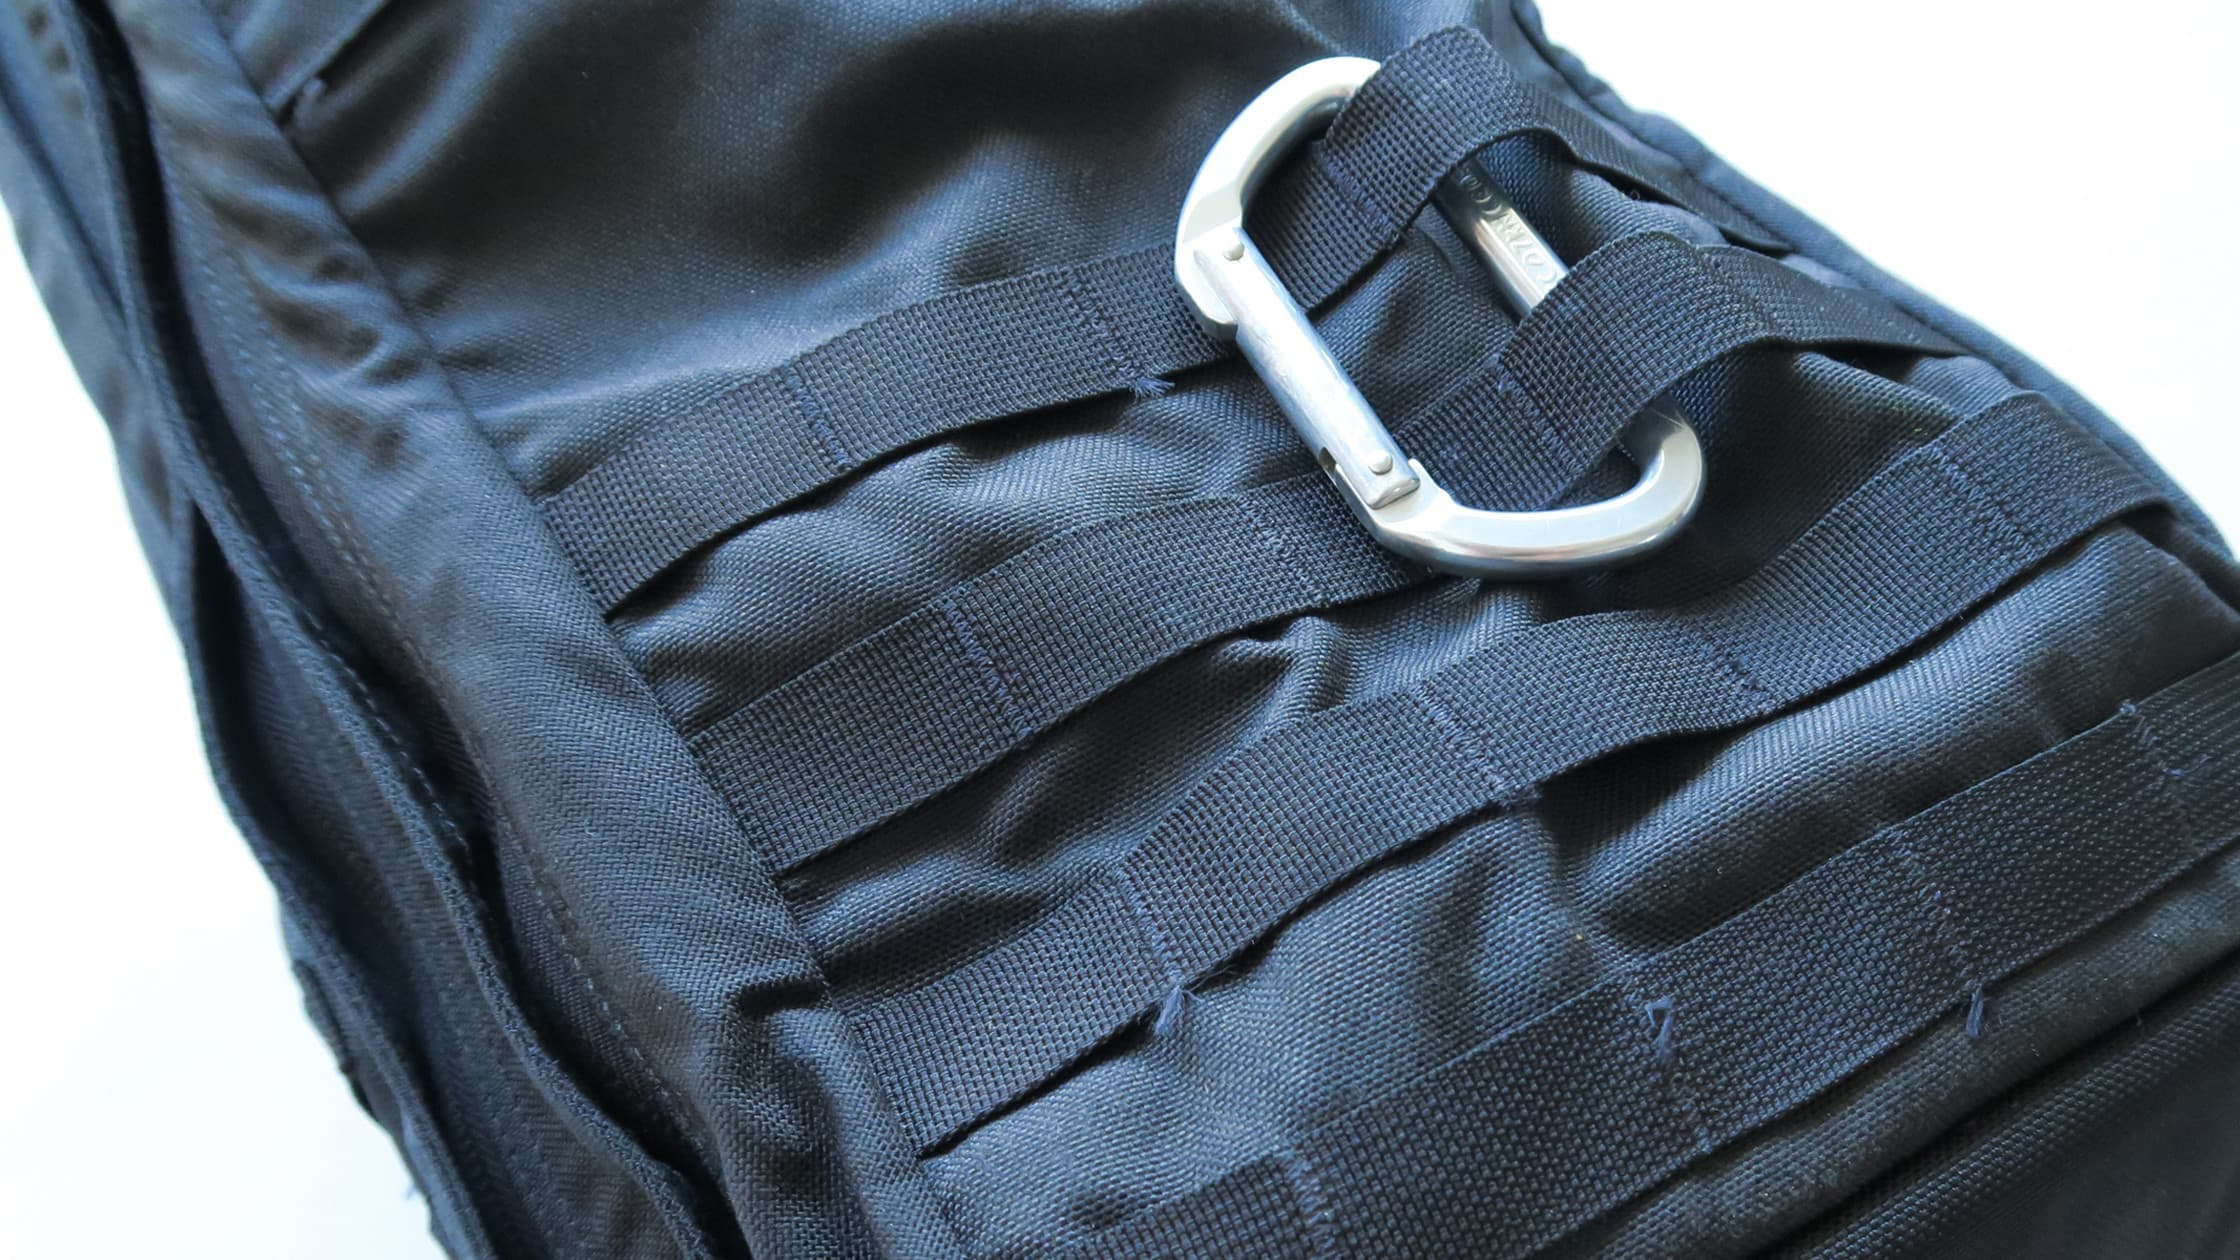 MOLLE on the back of the GORUCK GR2